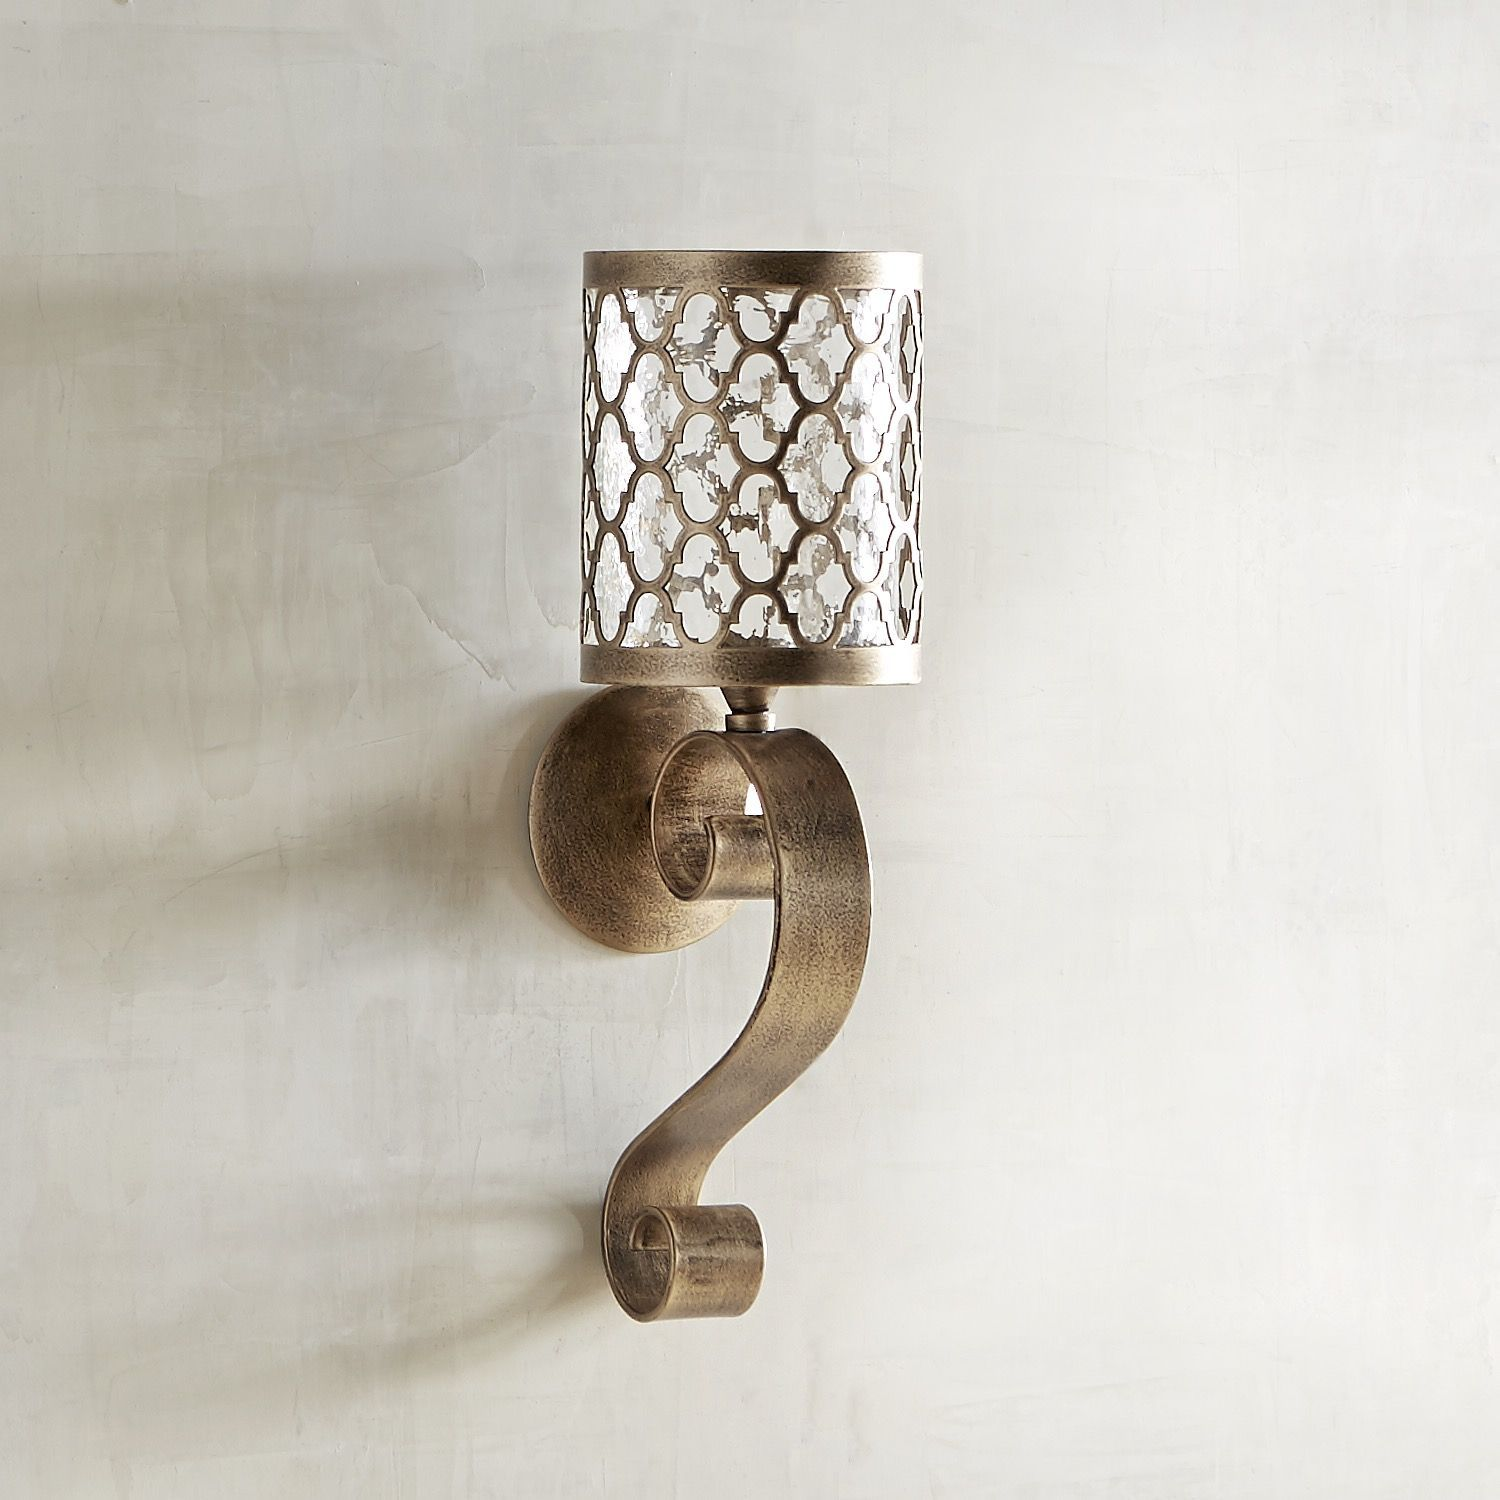 Quatrefoil Scroll Small Candle Wall Sconce in 2020 ... on Silver Wall Sconces For Candles id=89713